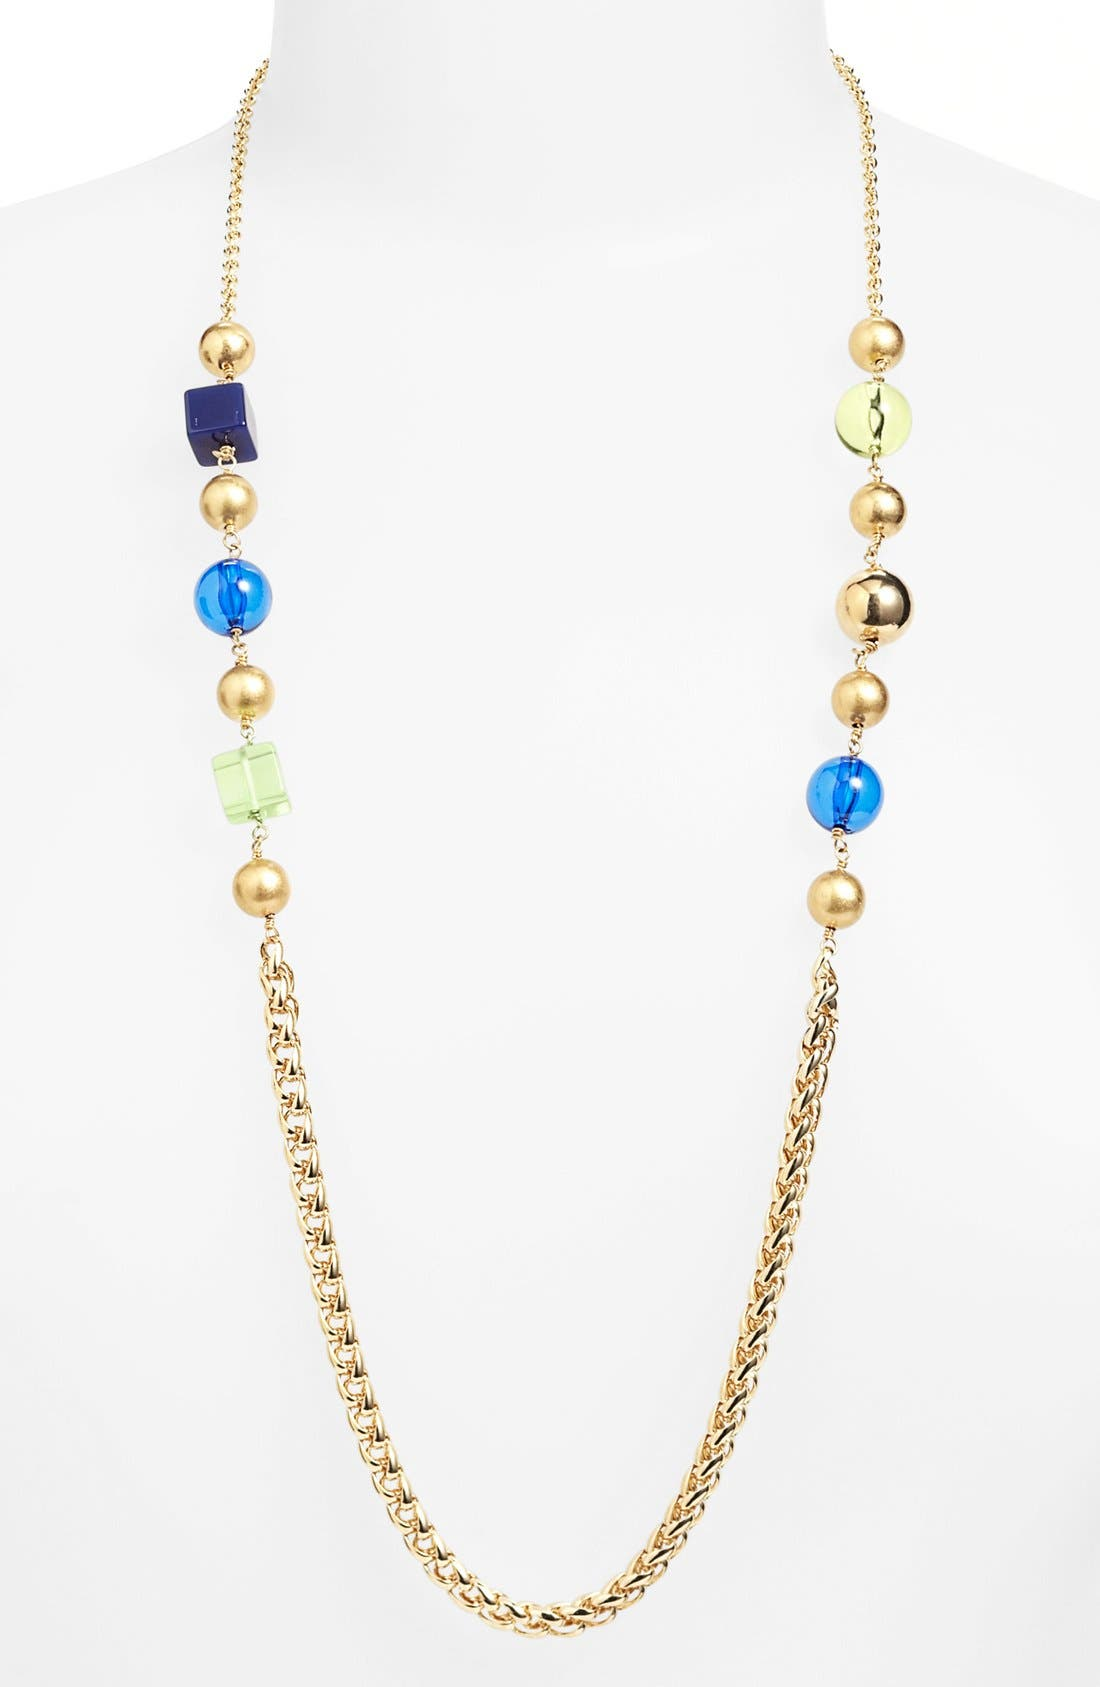 Alternate Image 1 Selected - MARC BY MARC JACOBS 'Ball & Chains' Long Station Necklace